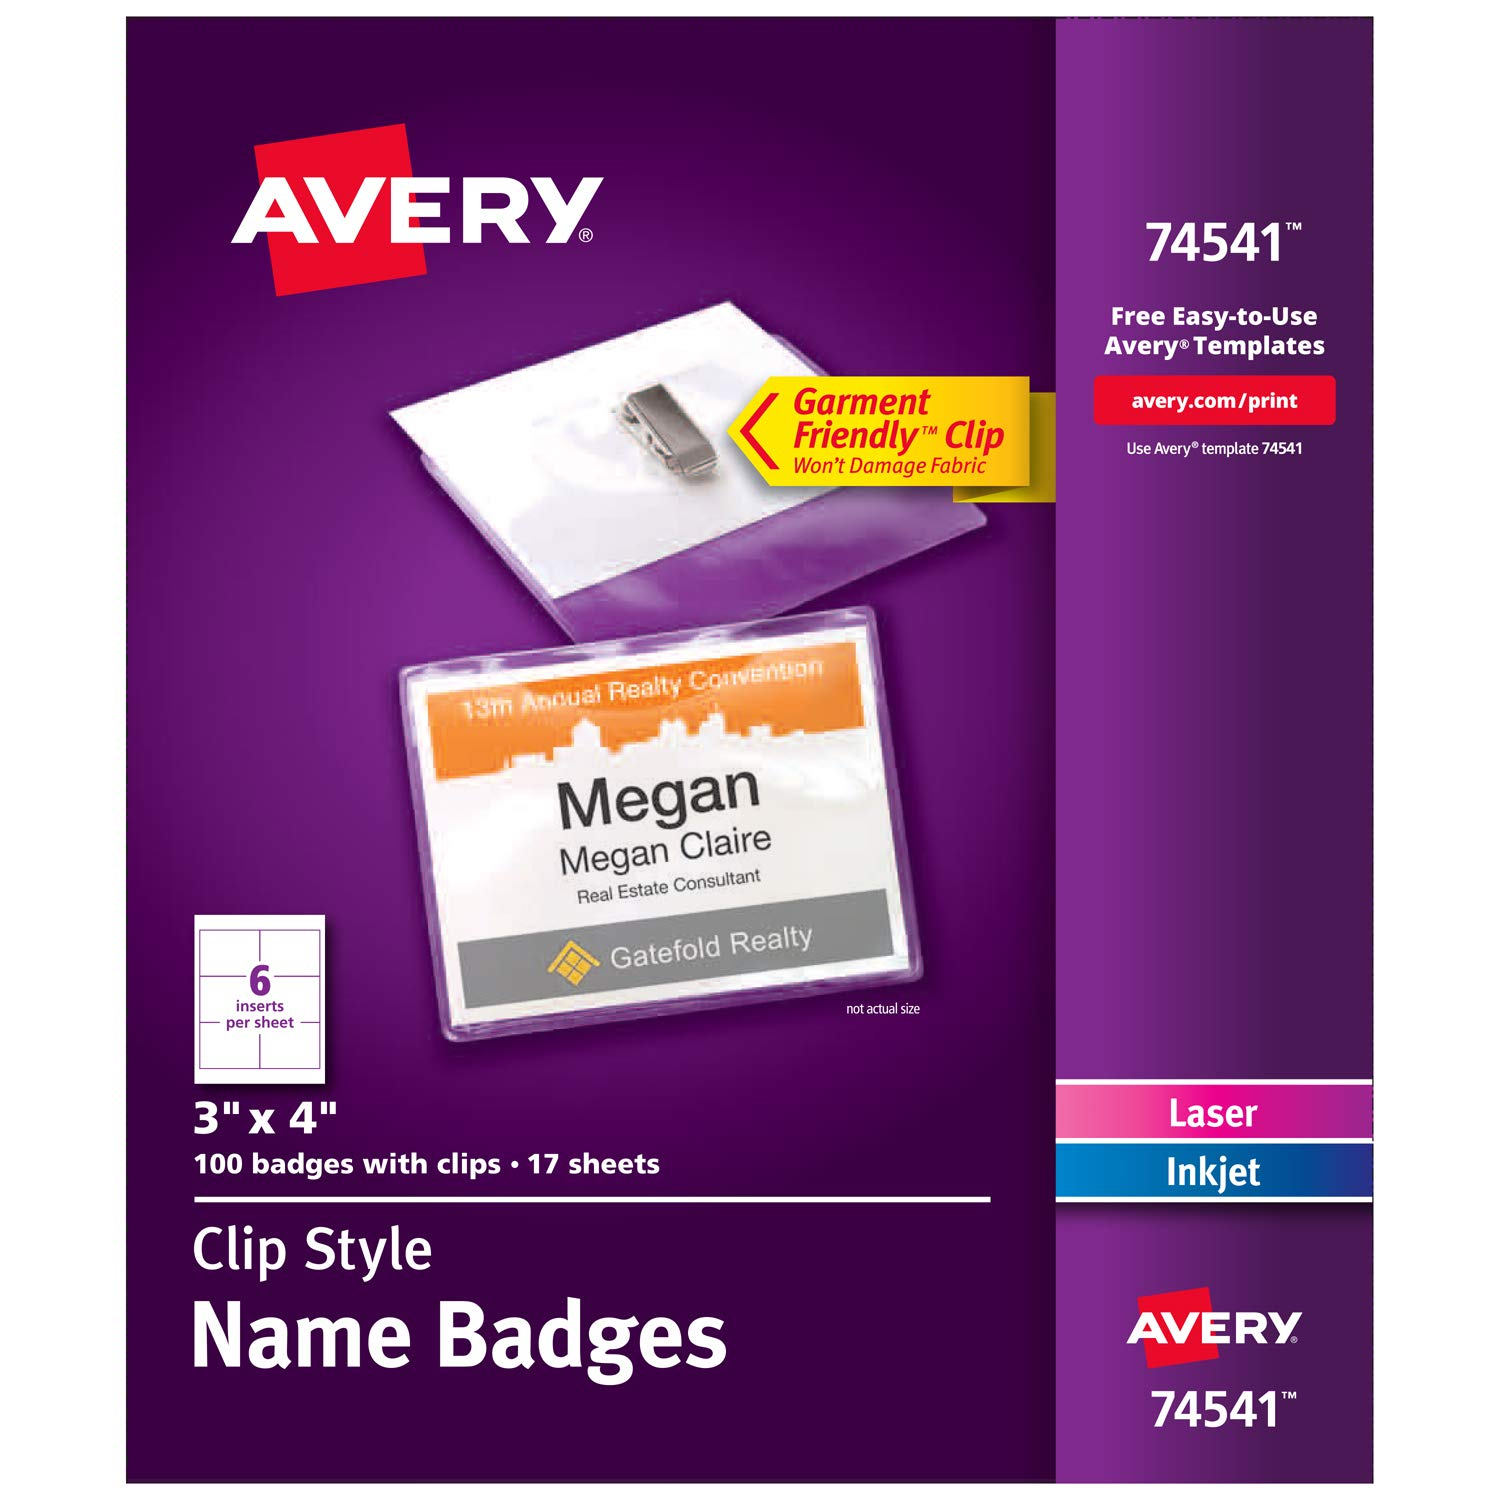 Avery Clip Name Badges, Print or Write, 3'' x 4'', 100 Inserts & Badge Holders with Clips (74541) by AVERY